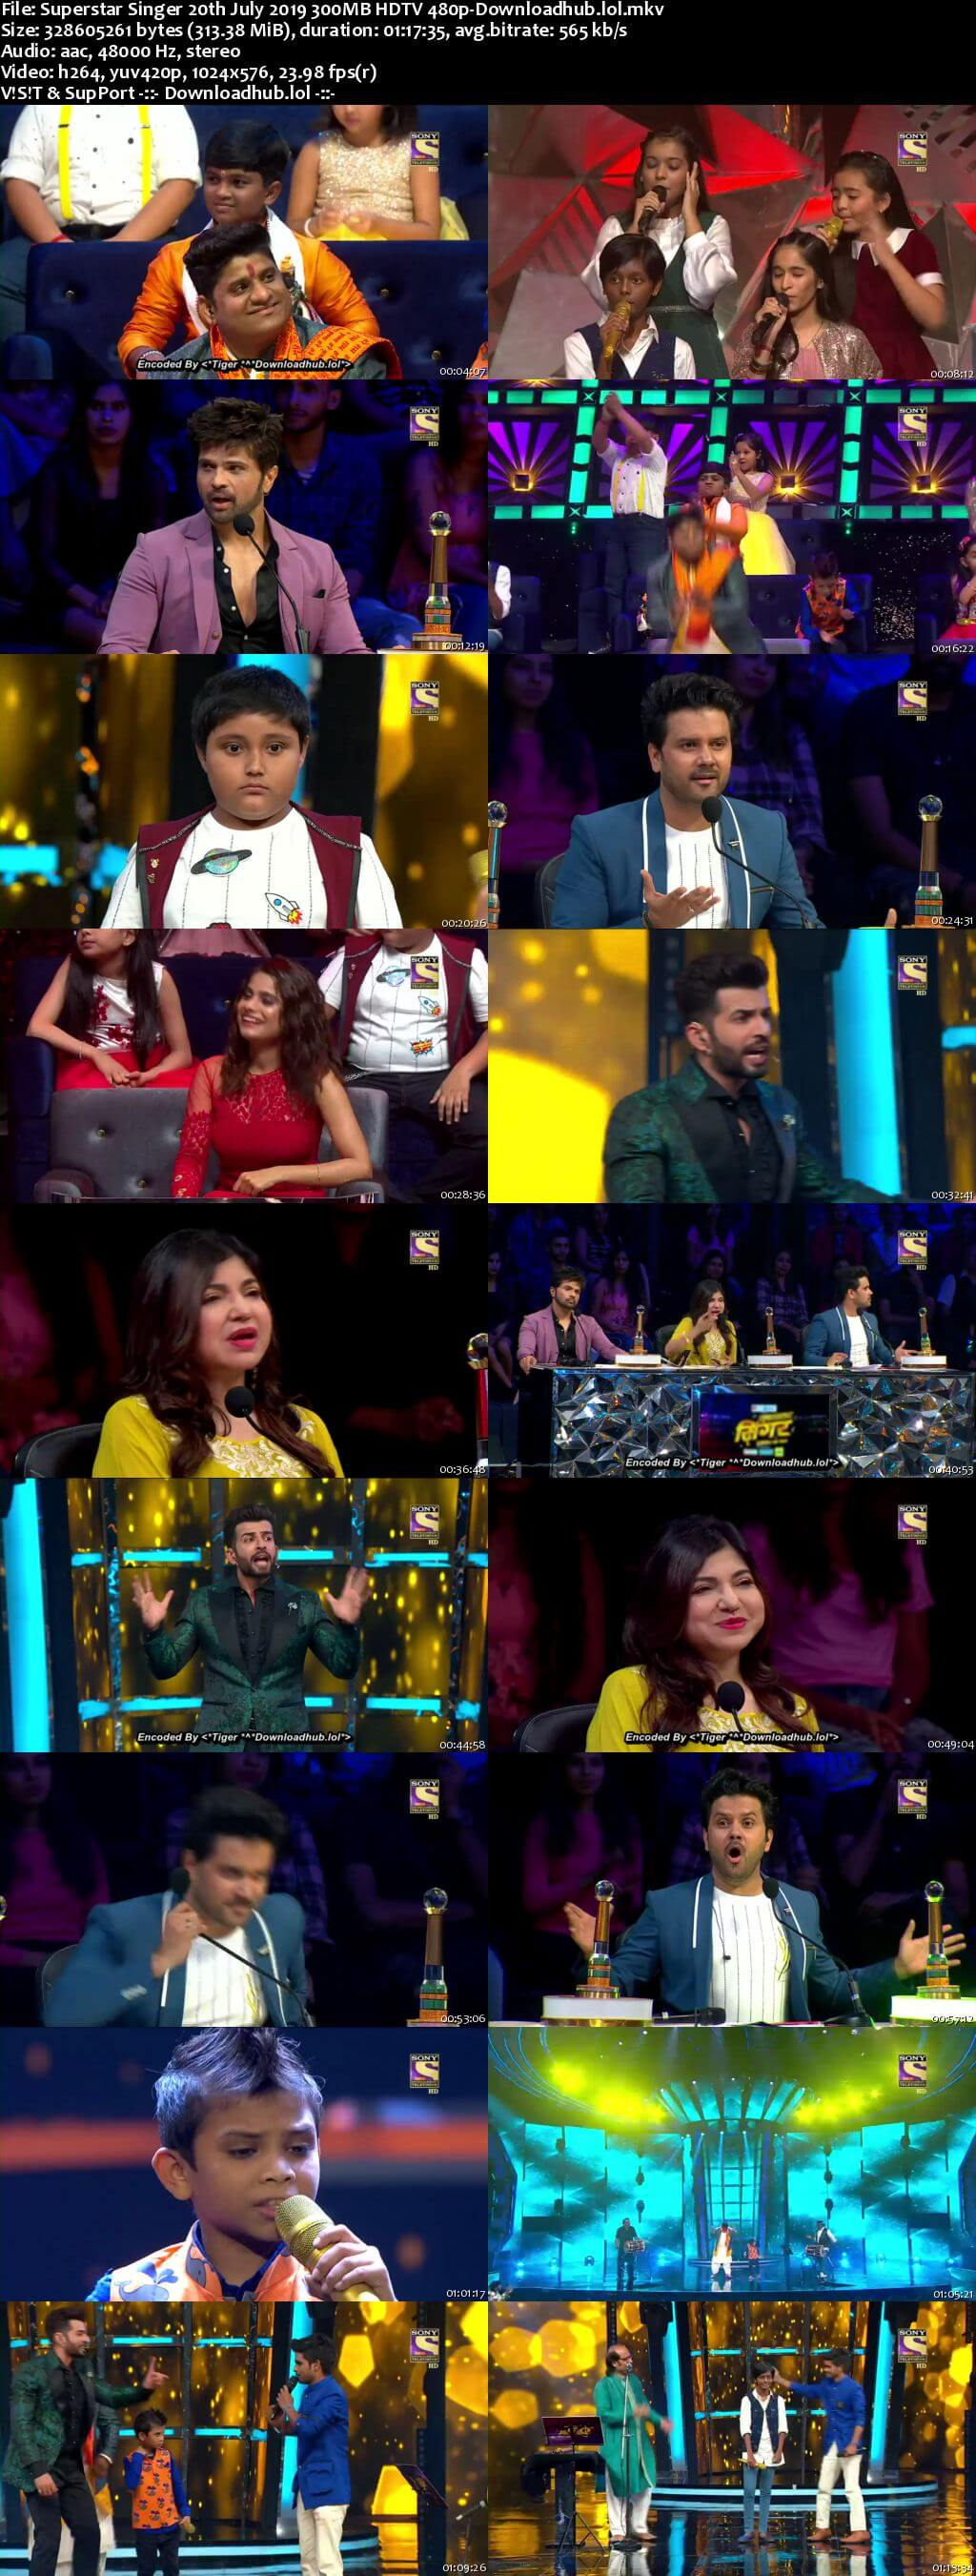 Watch Online Superstar Singer 20th July 2019 300MB Download